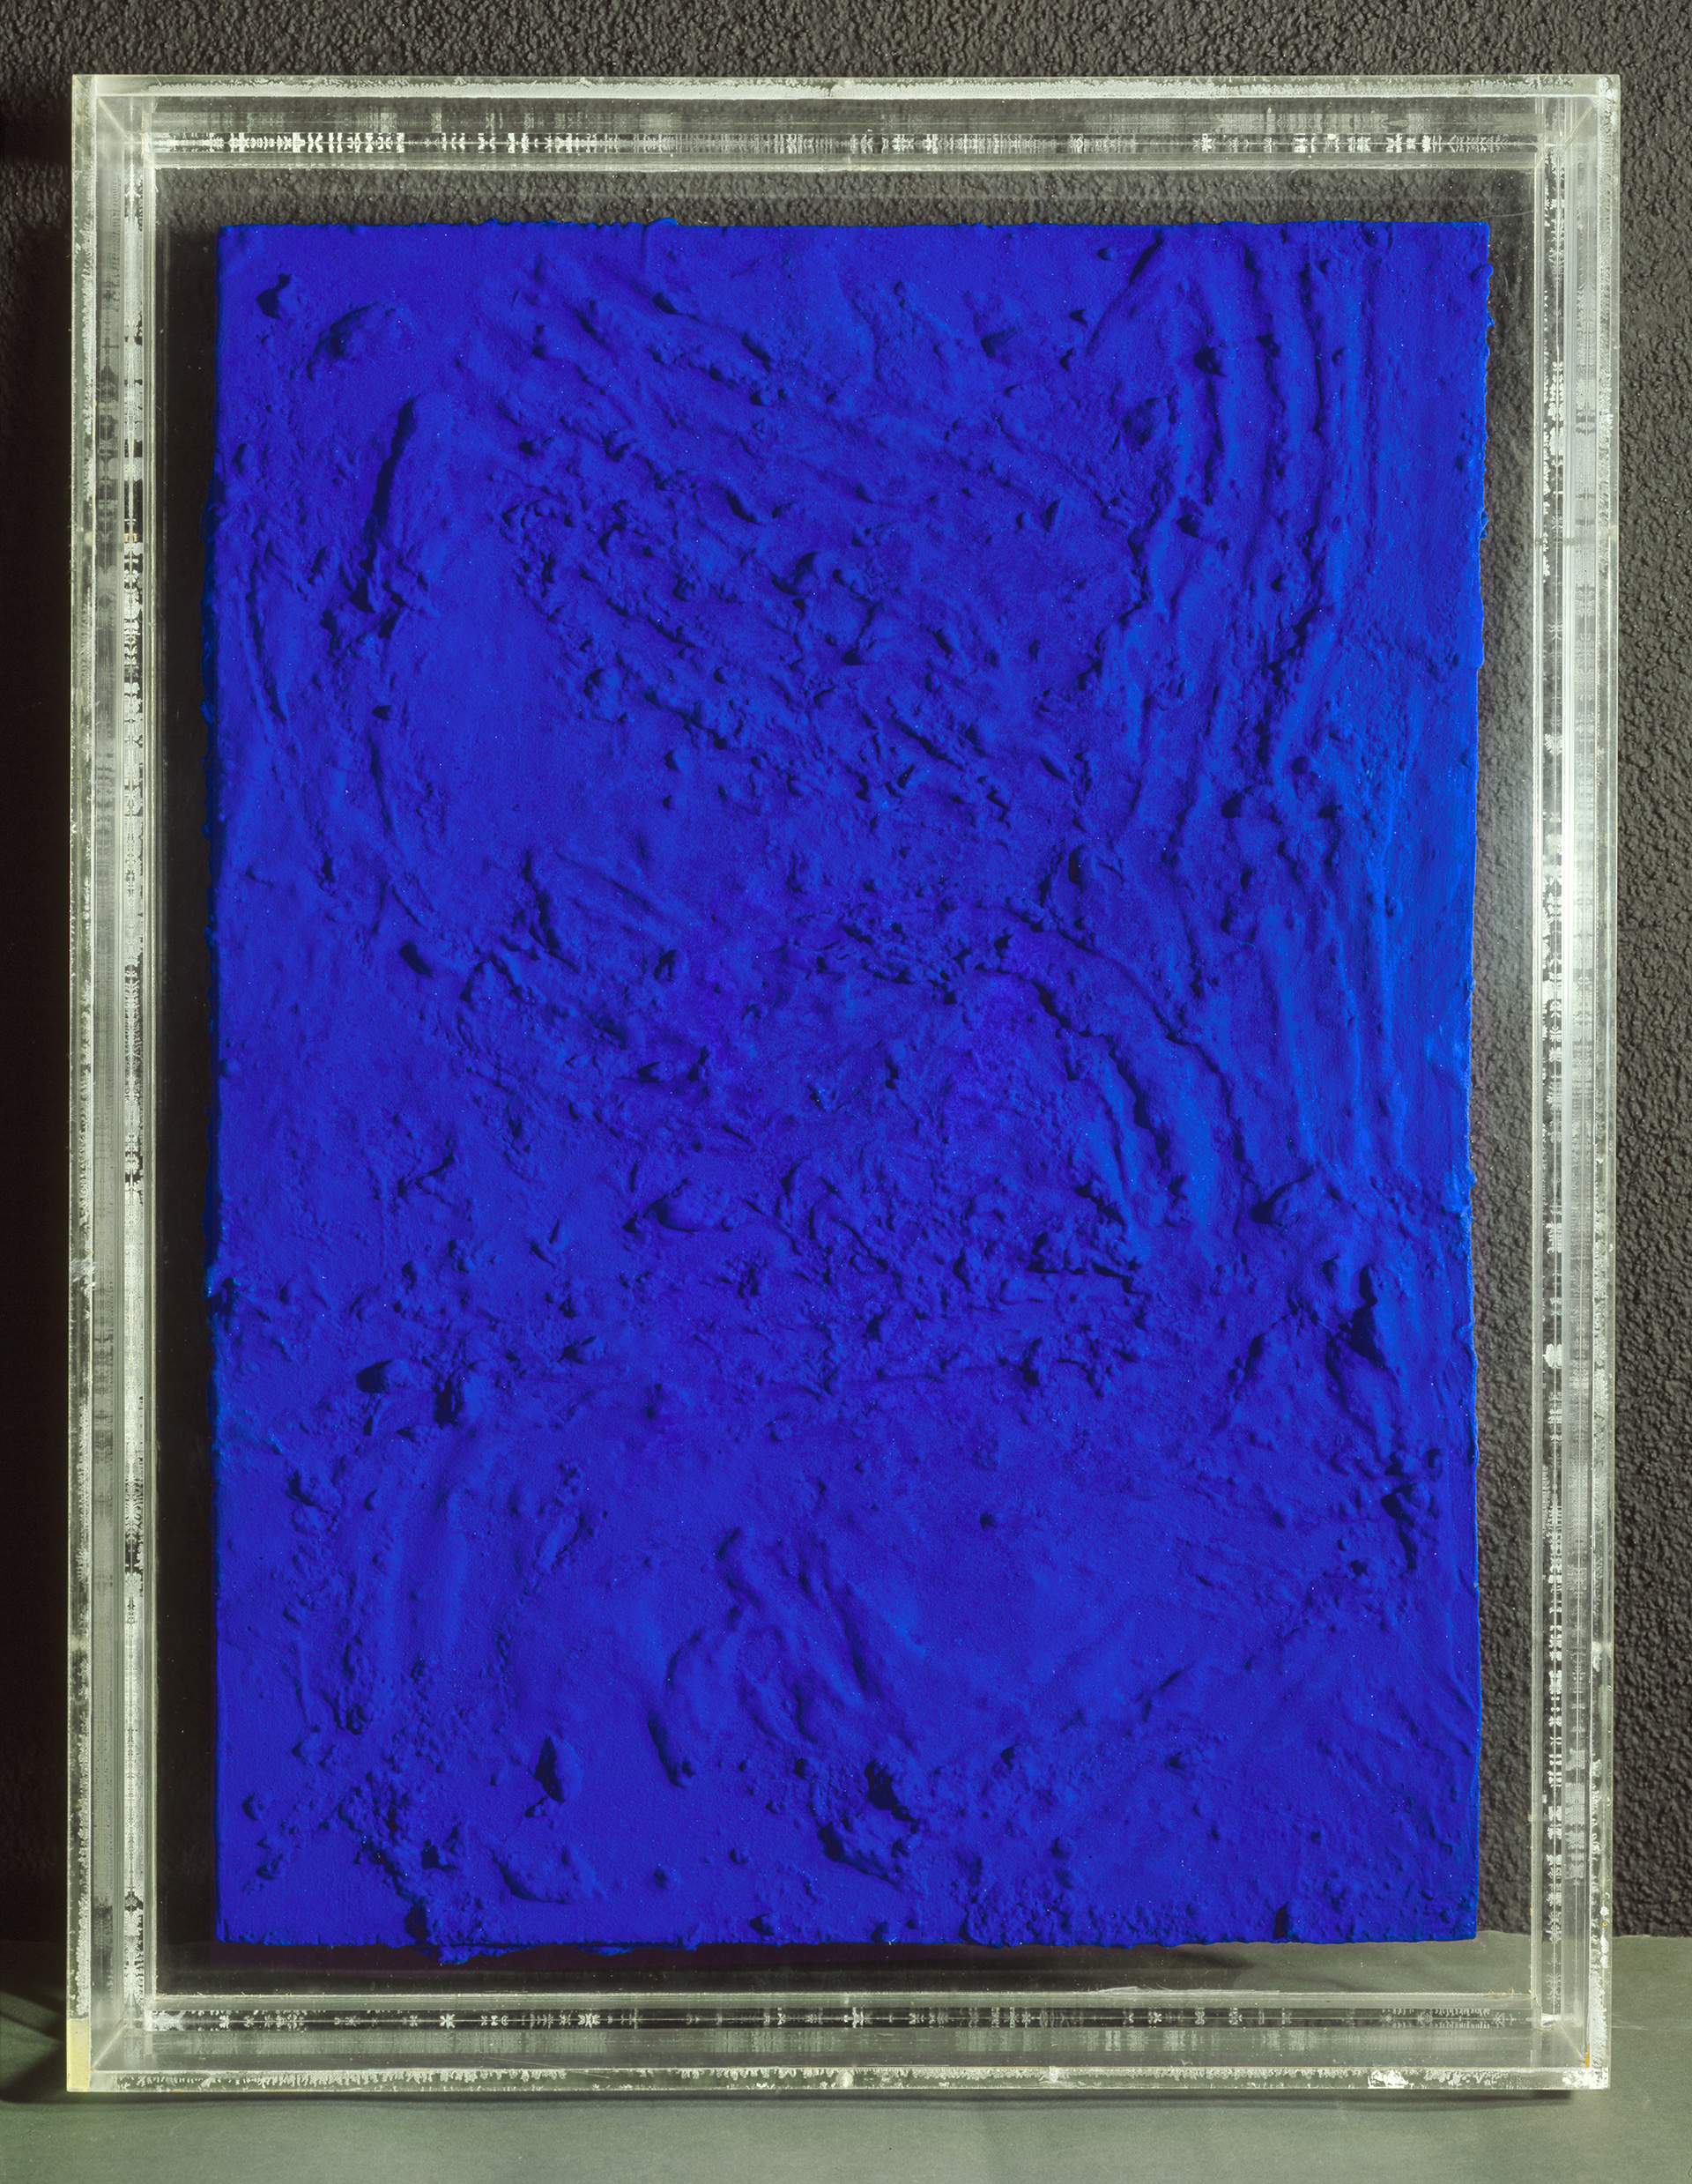 Yves Klein, Relief Planétaire RP8, 1961, Synthetic resin, painted, on wood, Kunsthaus Zürich, 1973 | Museum der Moderne Salzburg | STIR